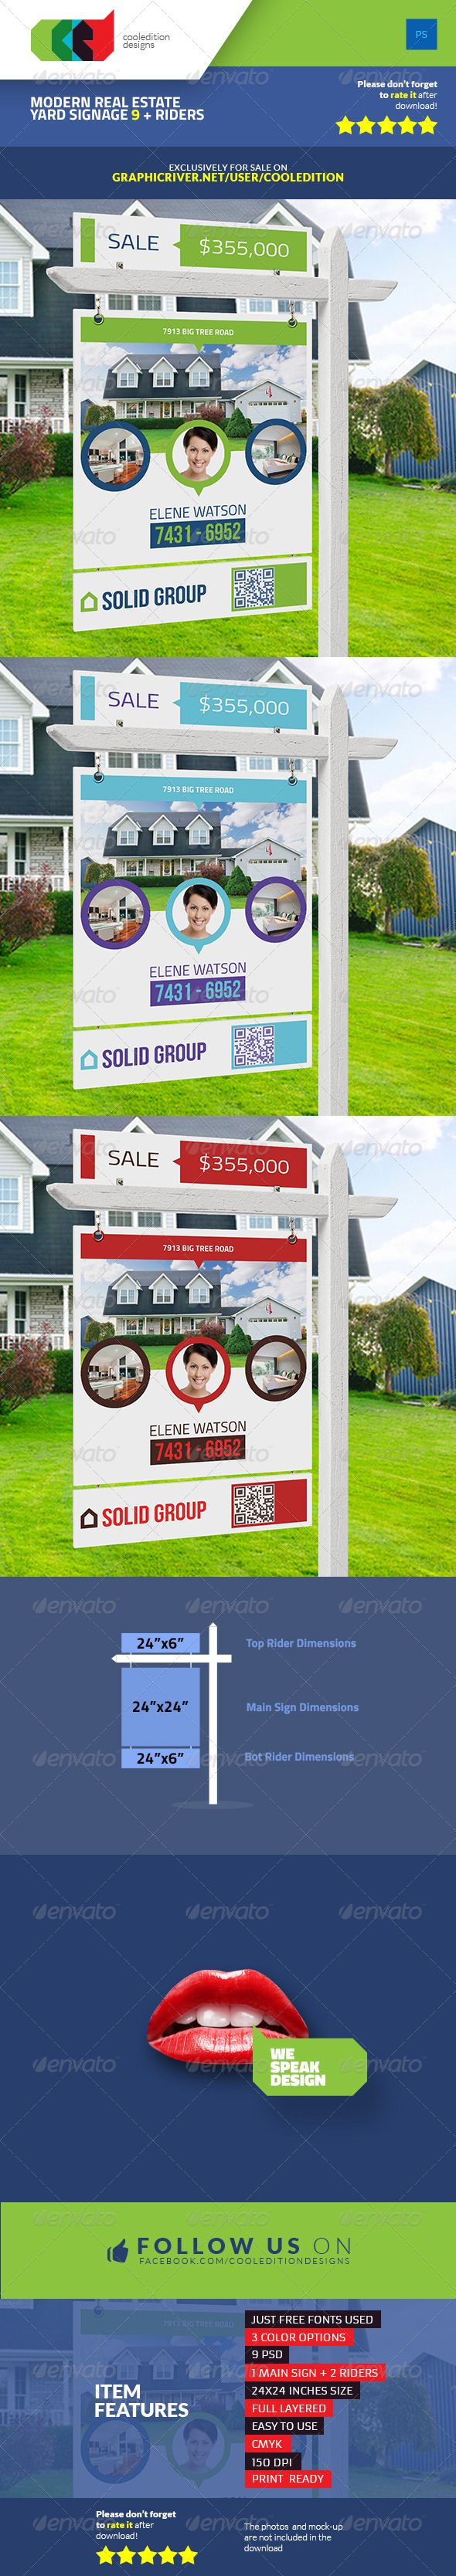 Printable Modern Real Estate Yard Signage Template 9 + Riders | Letreros